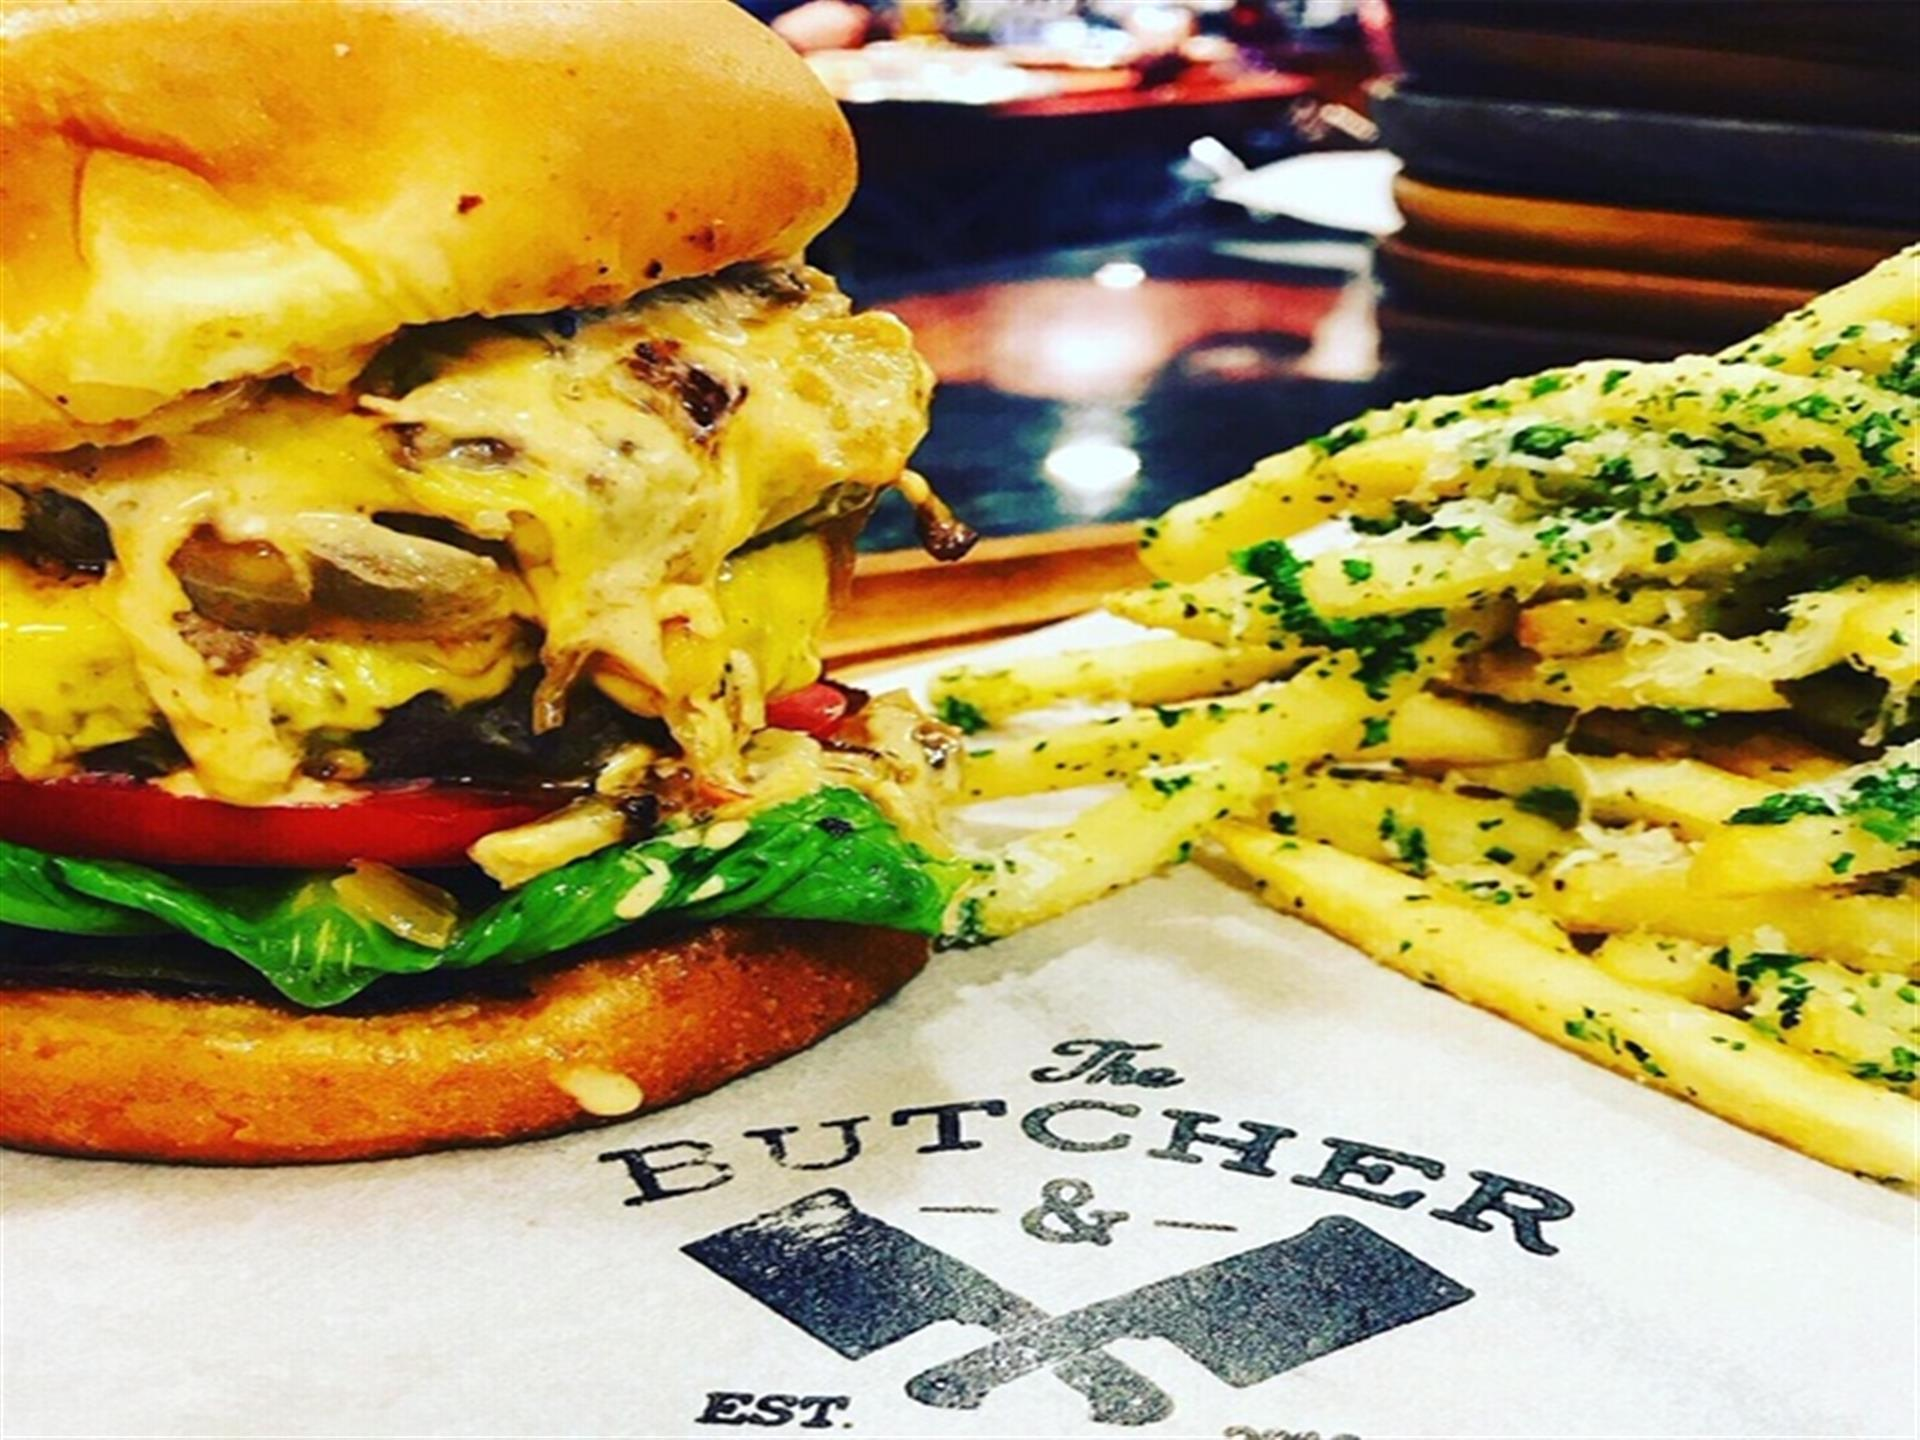 A loaded double cheeseburger with tomato, lettuce and onions, with a side of french fries on a wooden board